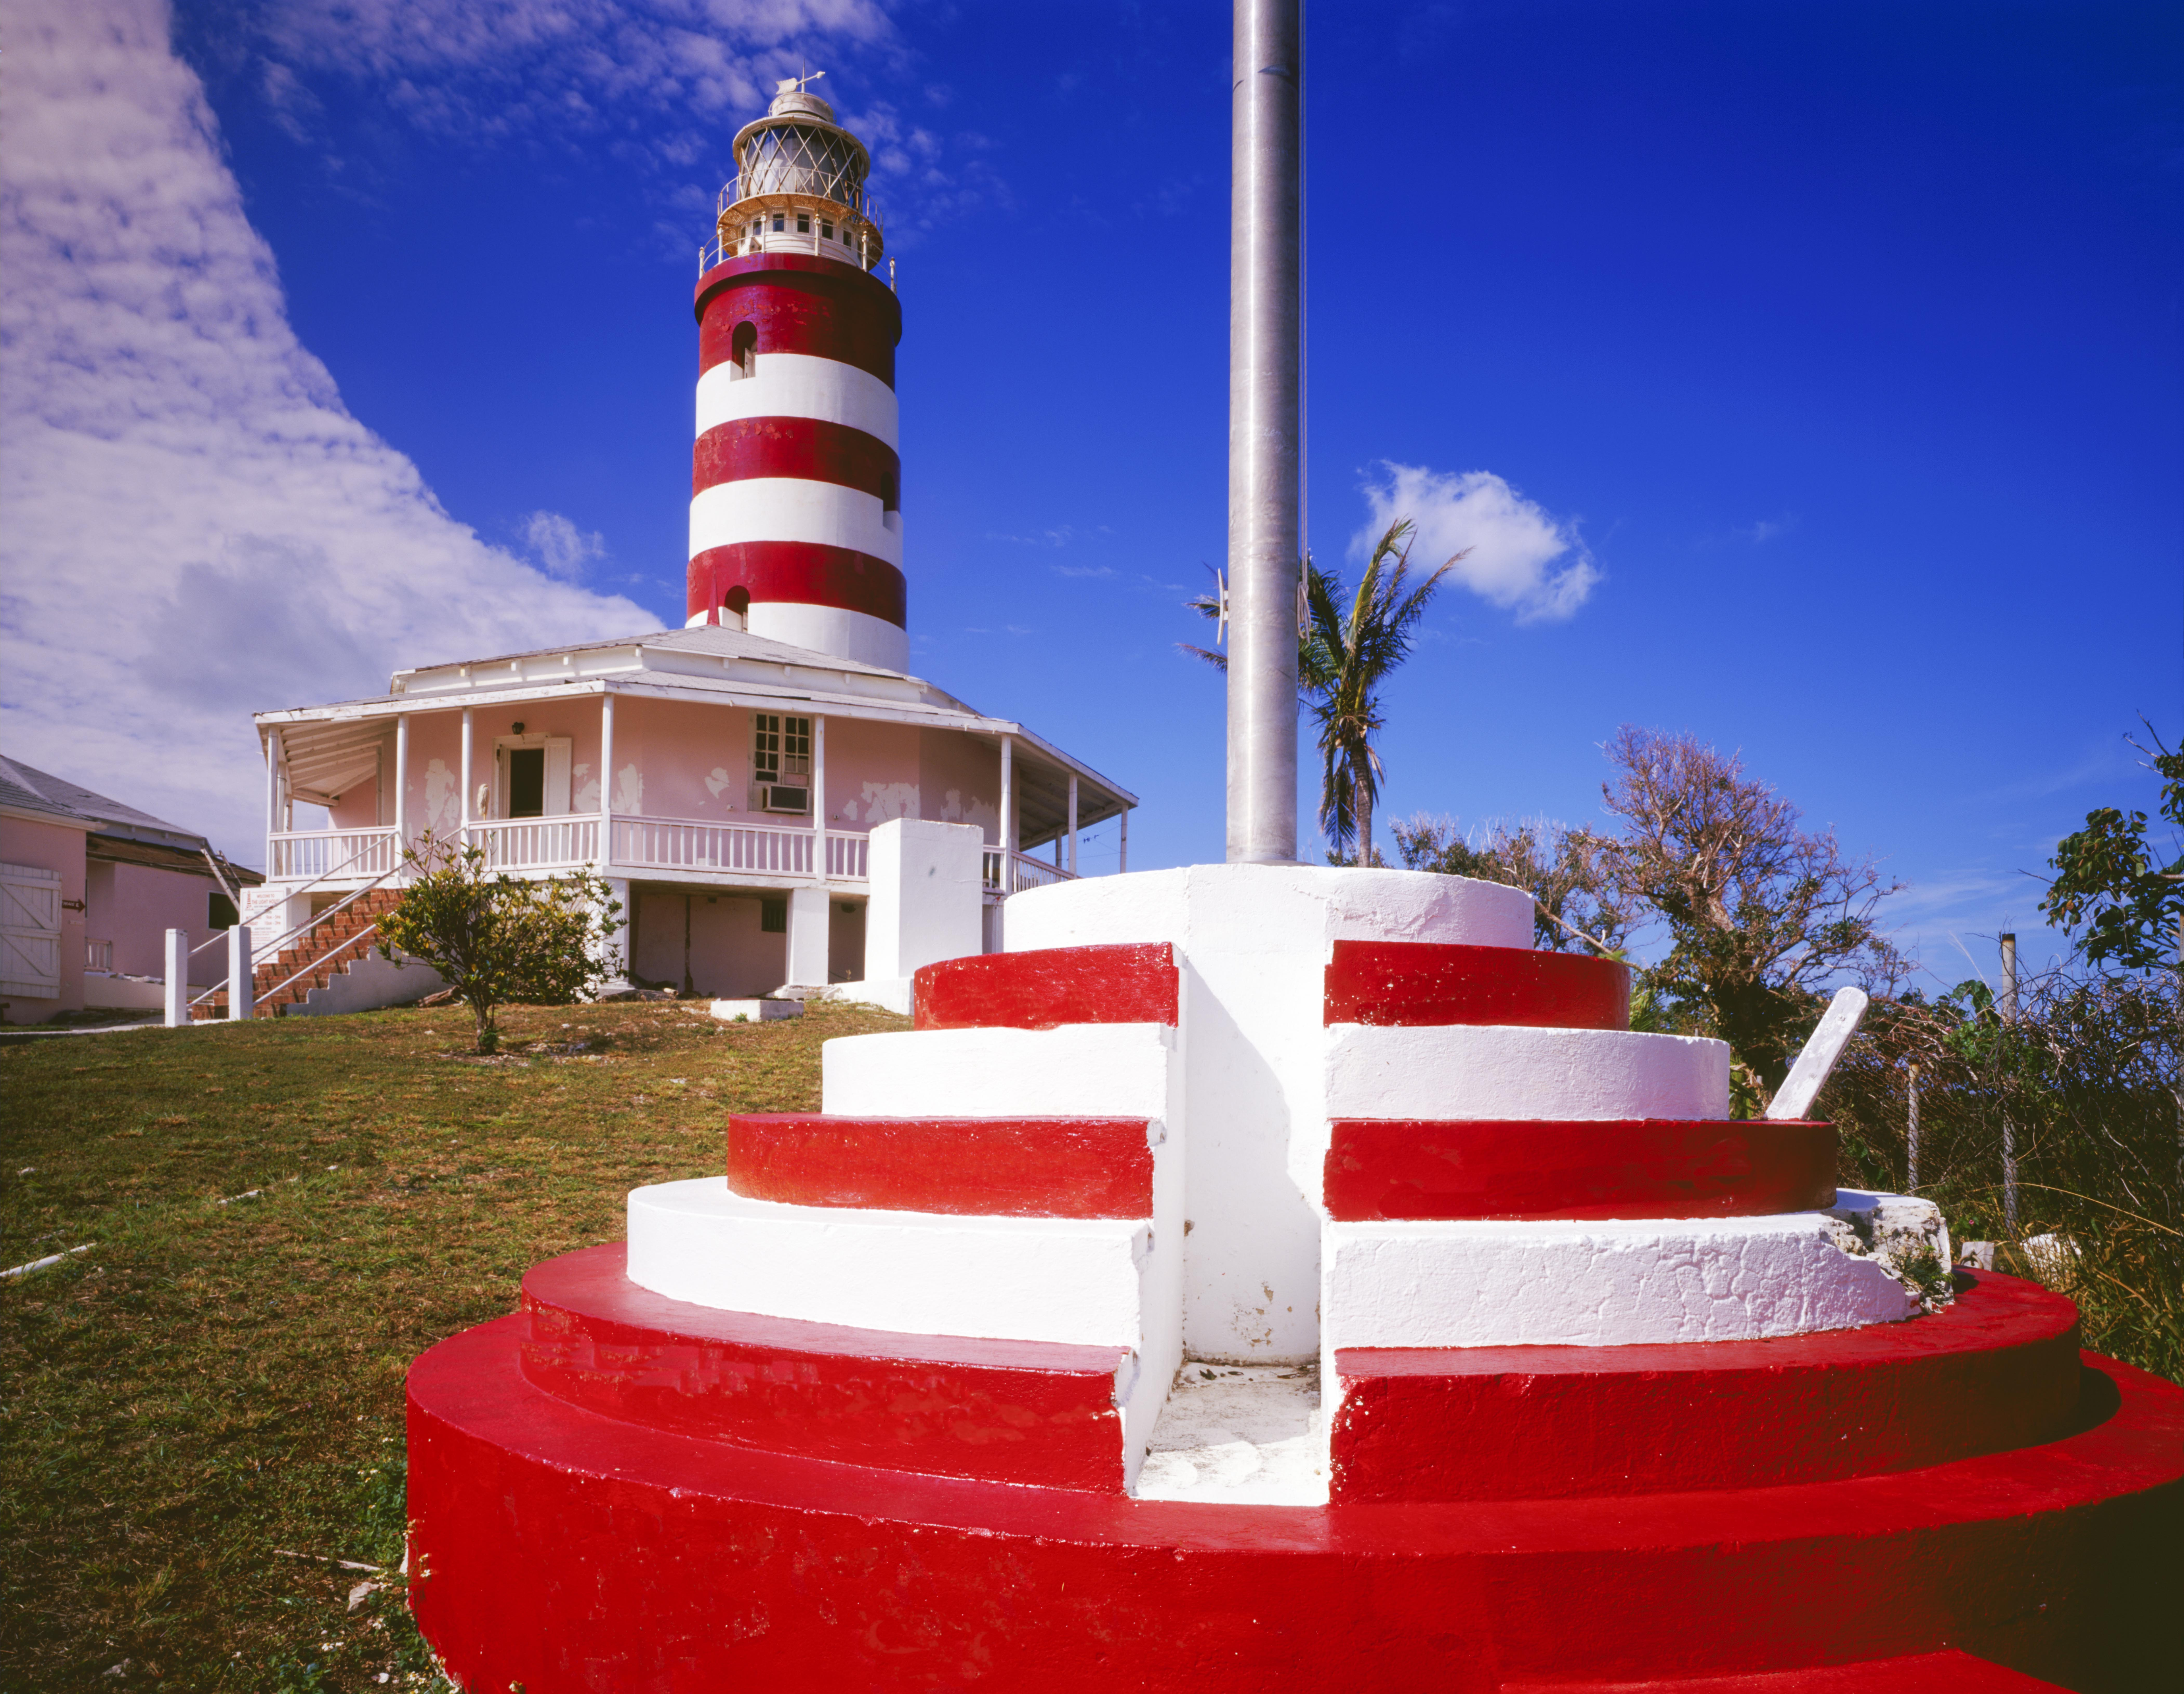 Elbow Cay Reef Lighthouse, Hopetown, Bahamas photographed by Tom Till